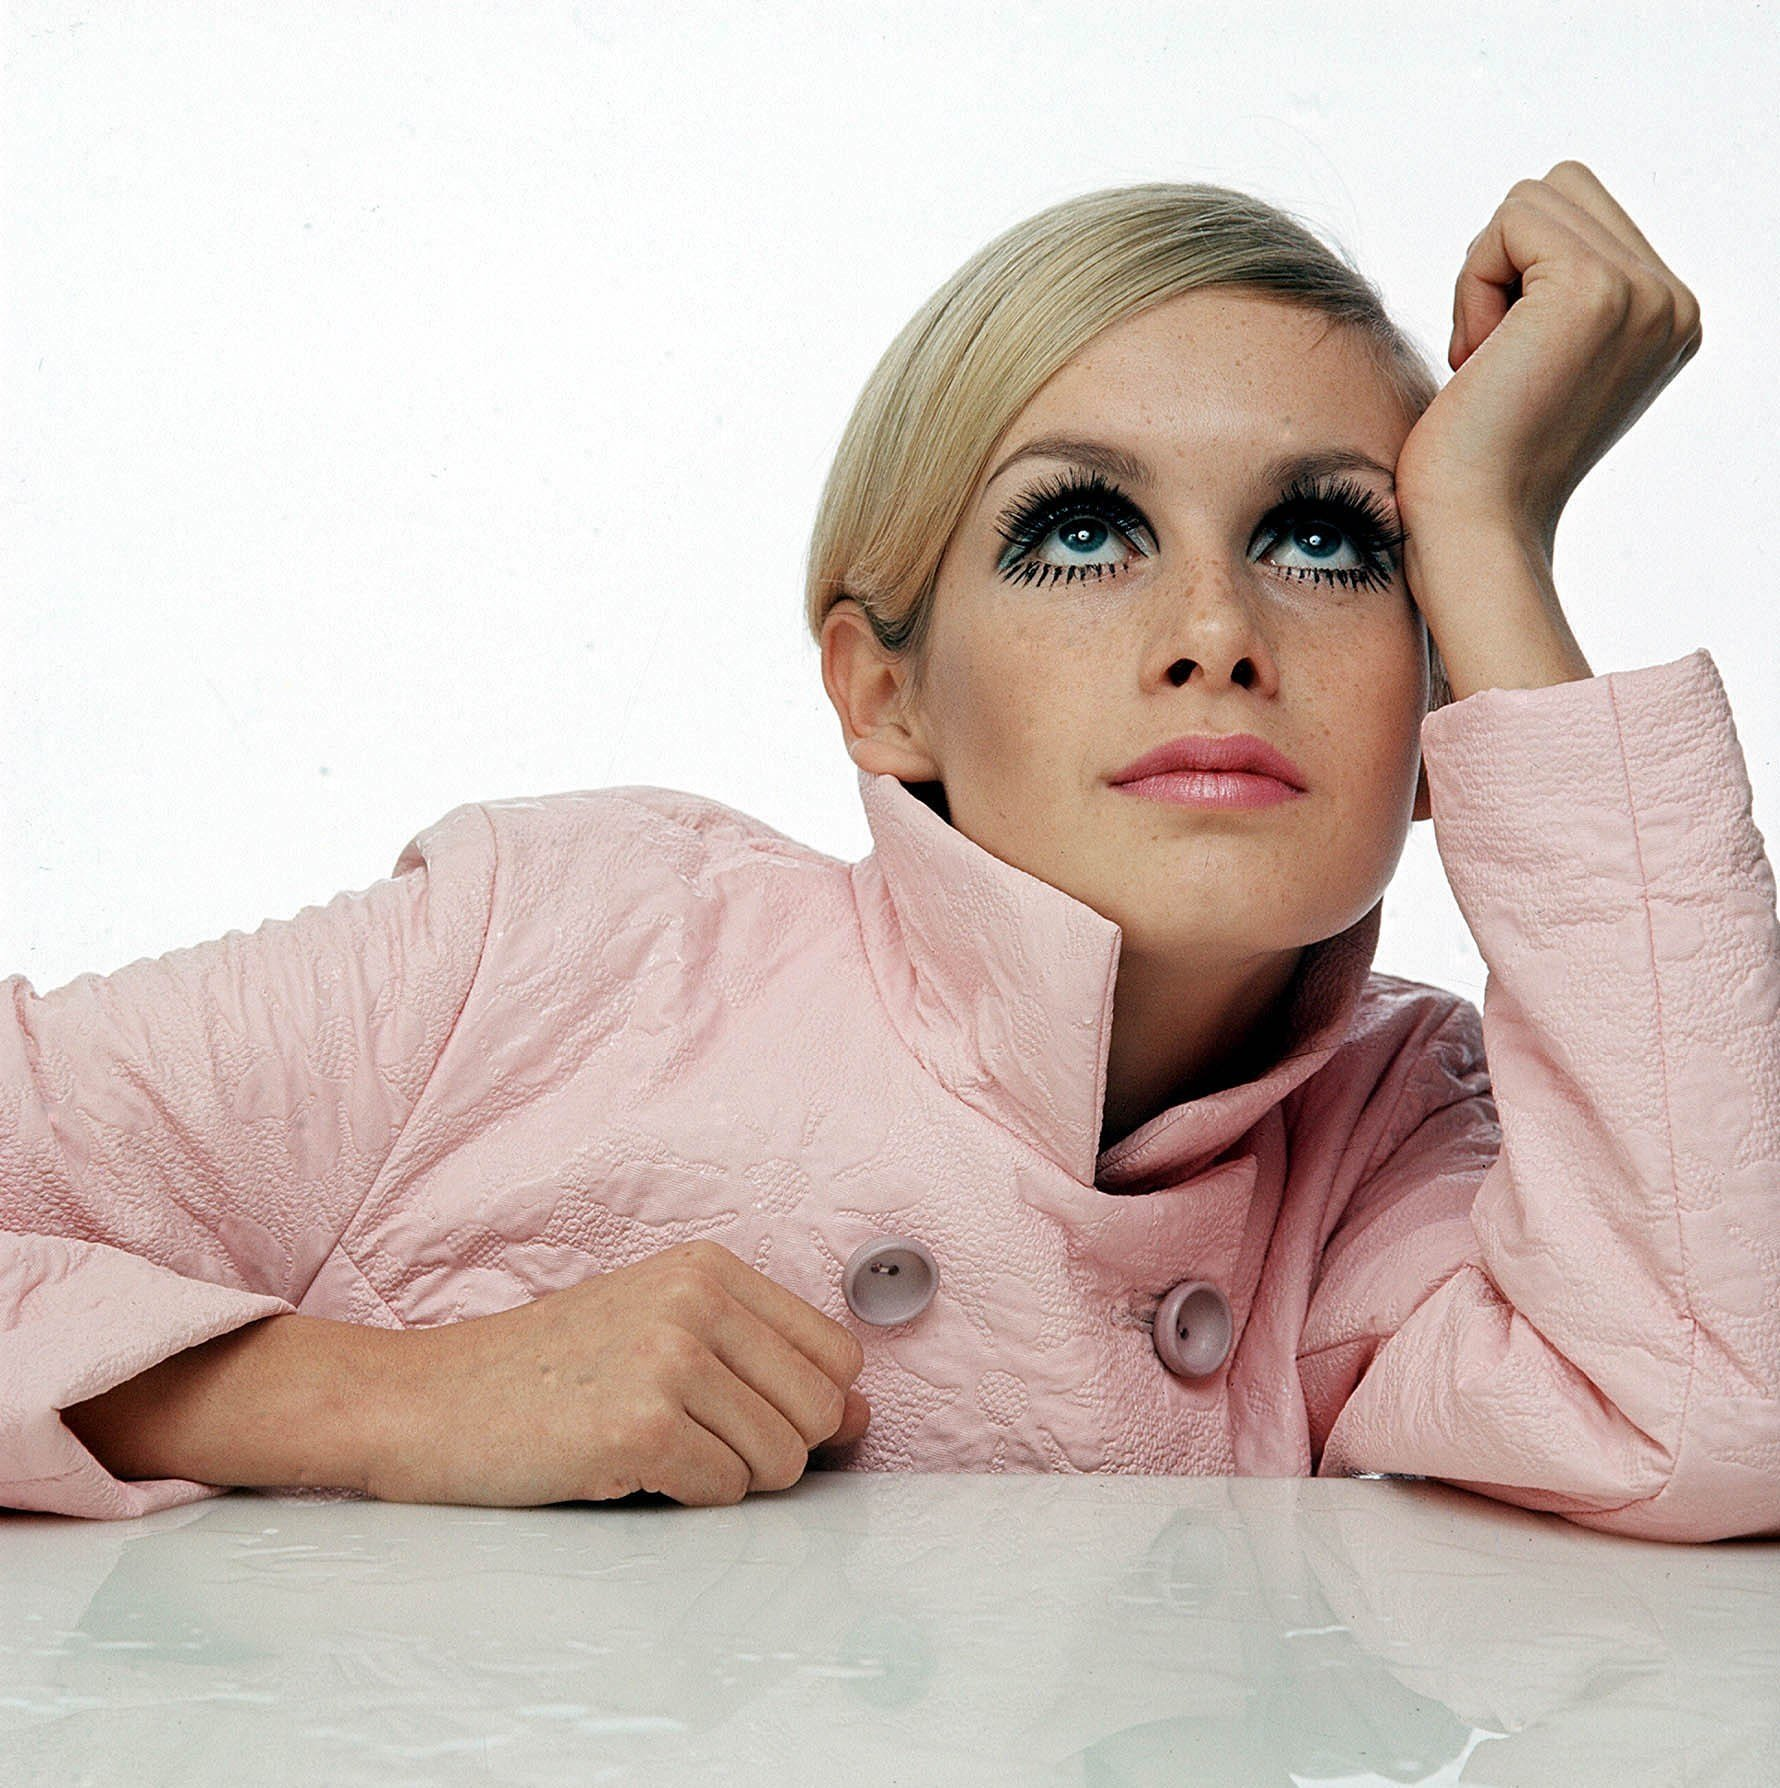 The Fall Of Troy Wallpaper Celebrating Sixties Icon Twiggy On Her 65th Birthday Vogue